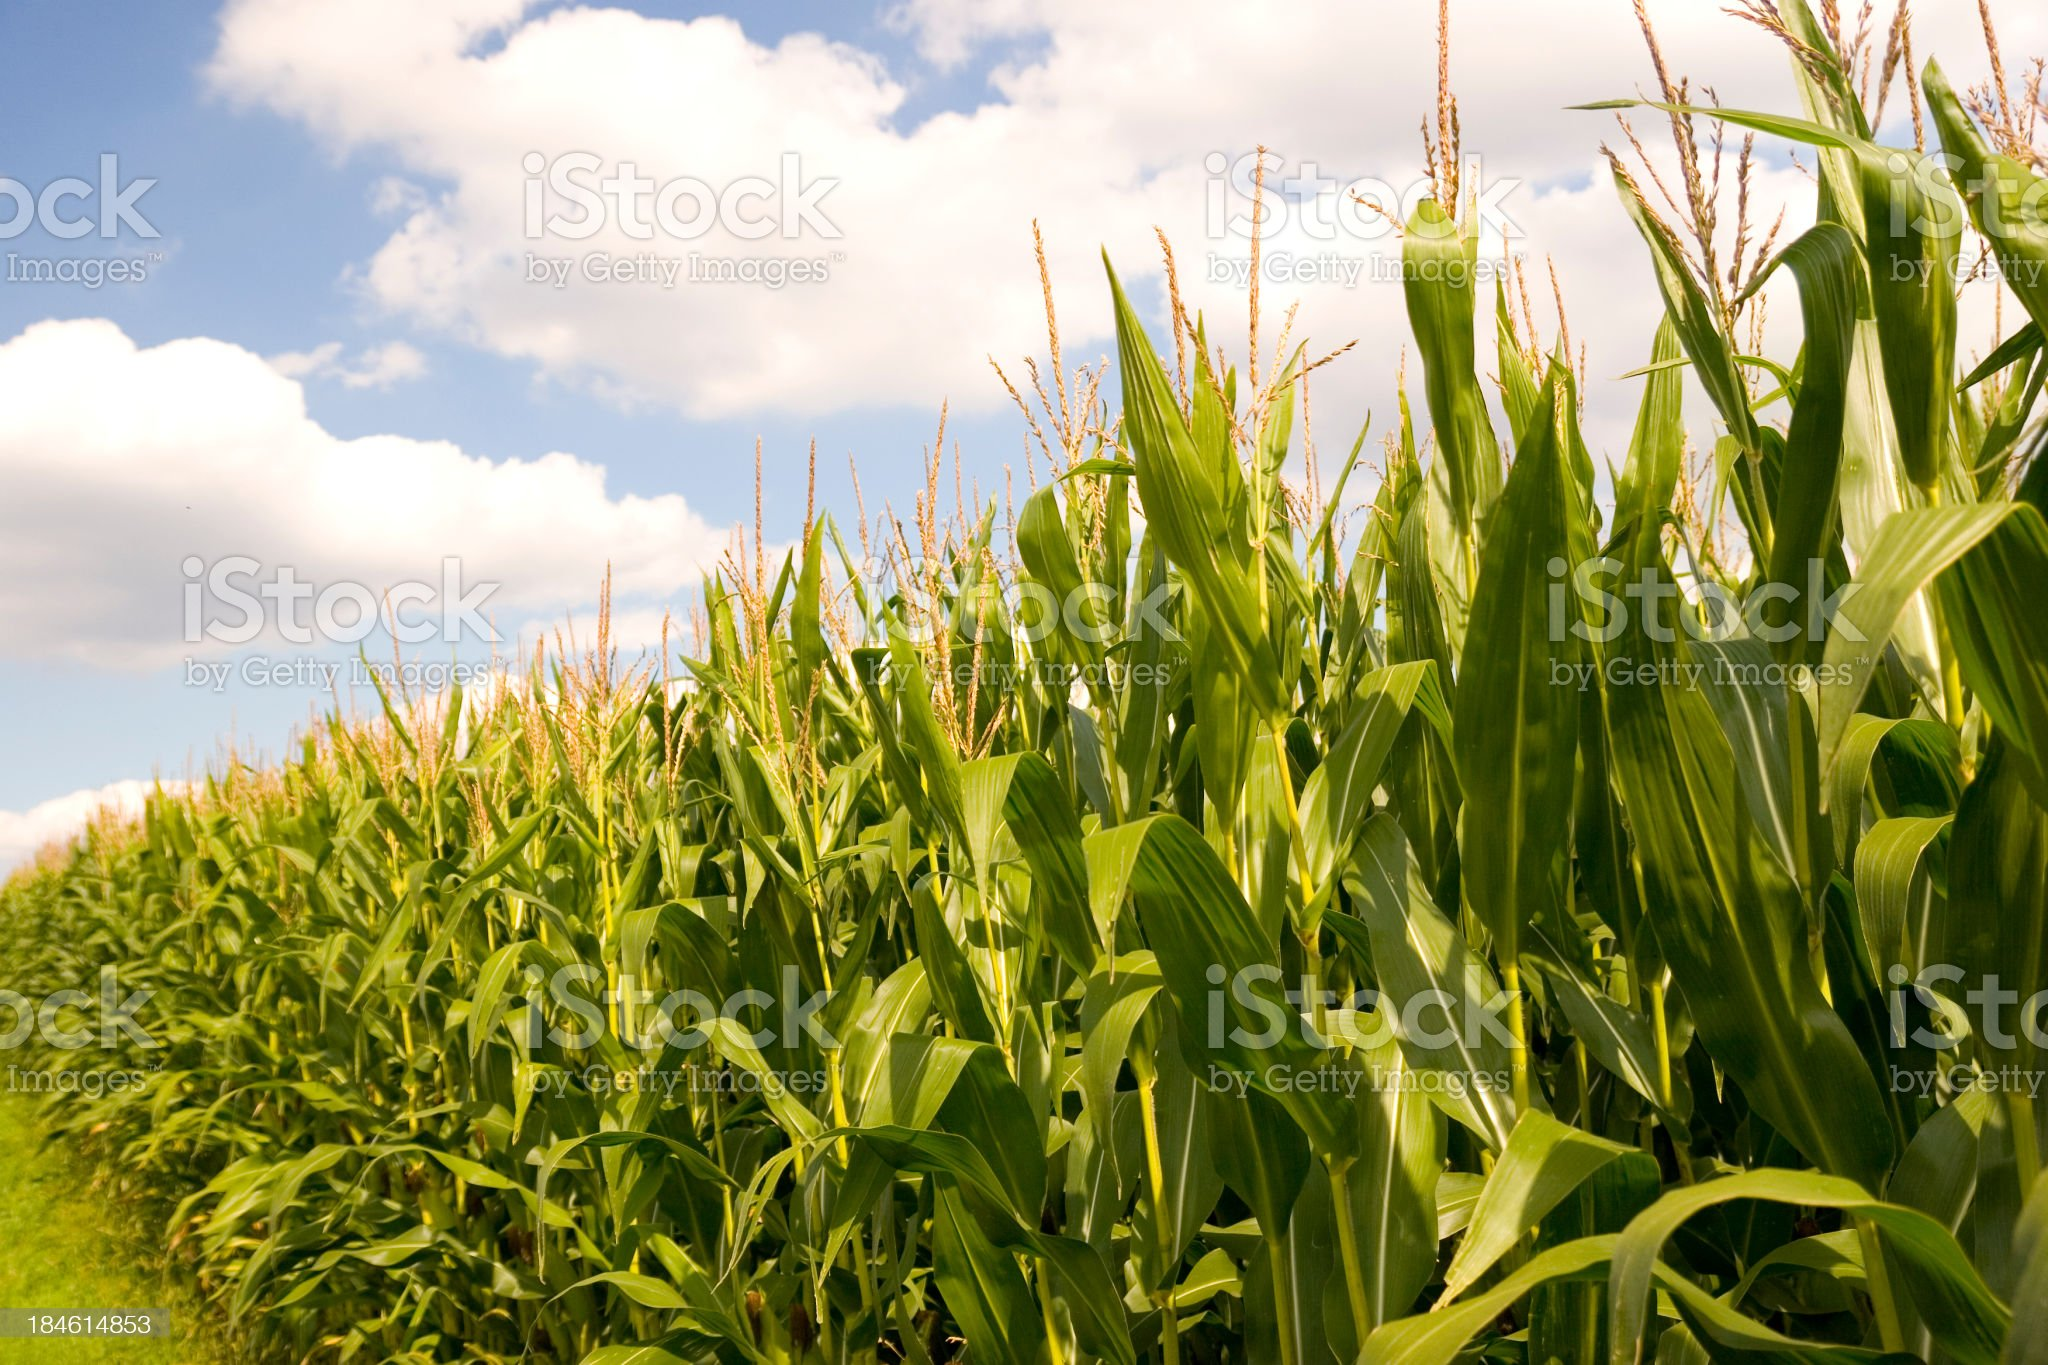 Corn Field Against Blue Cloudy Sky royalty-free stock photo